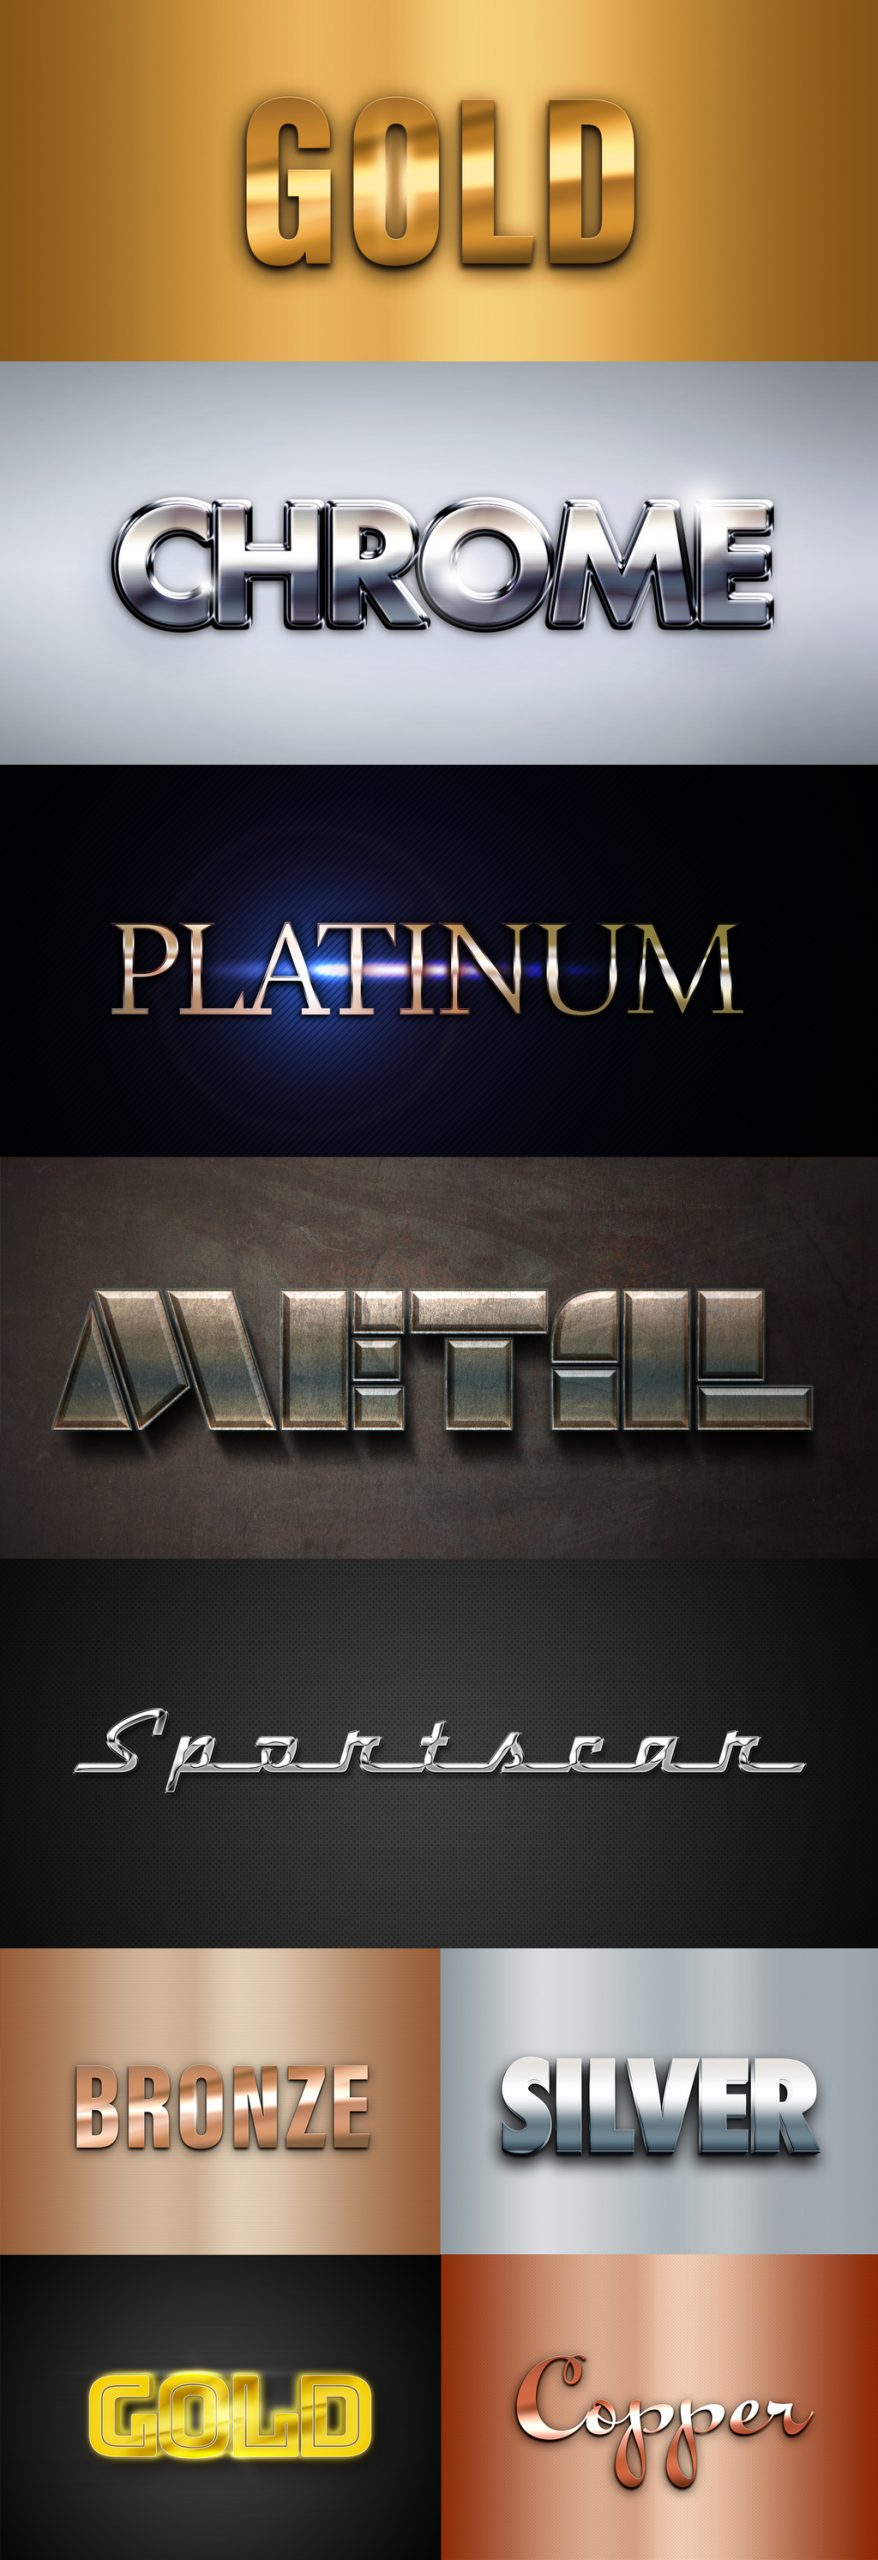 Metal Text Effects Mockup Collection scaled - دانلود موکاپ و استایل لایه باز Metal Text Effects